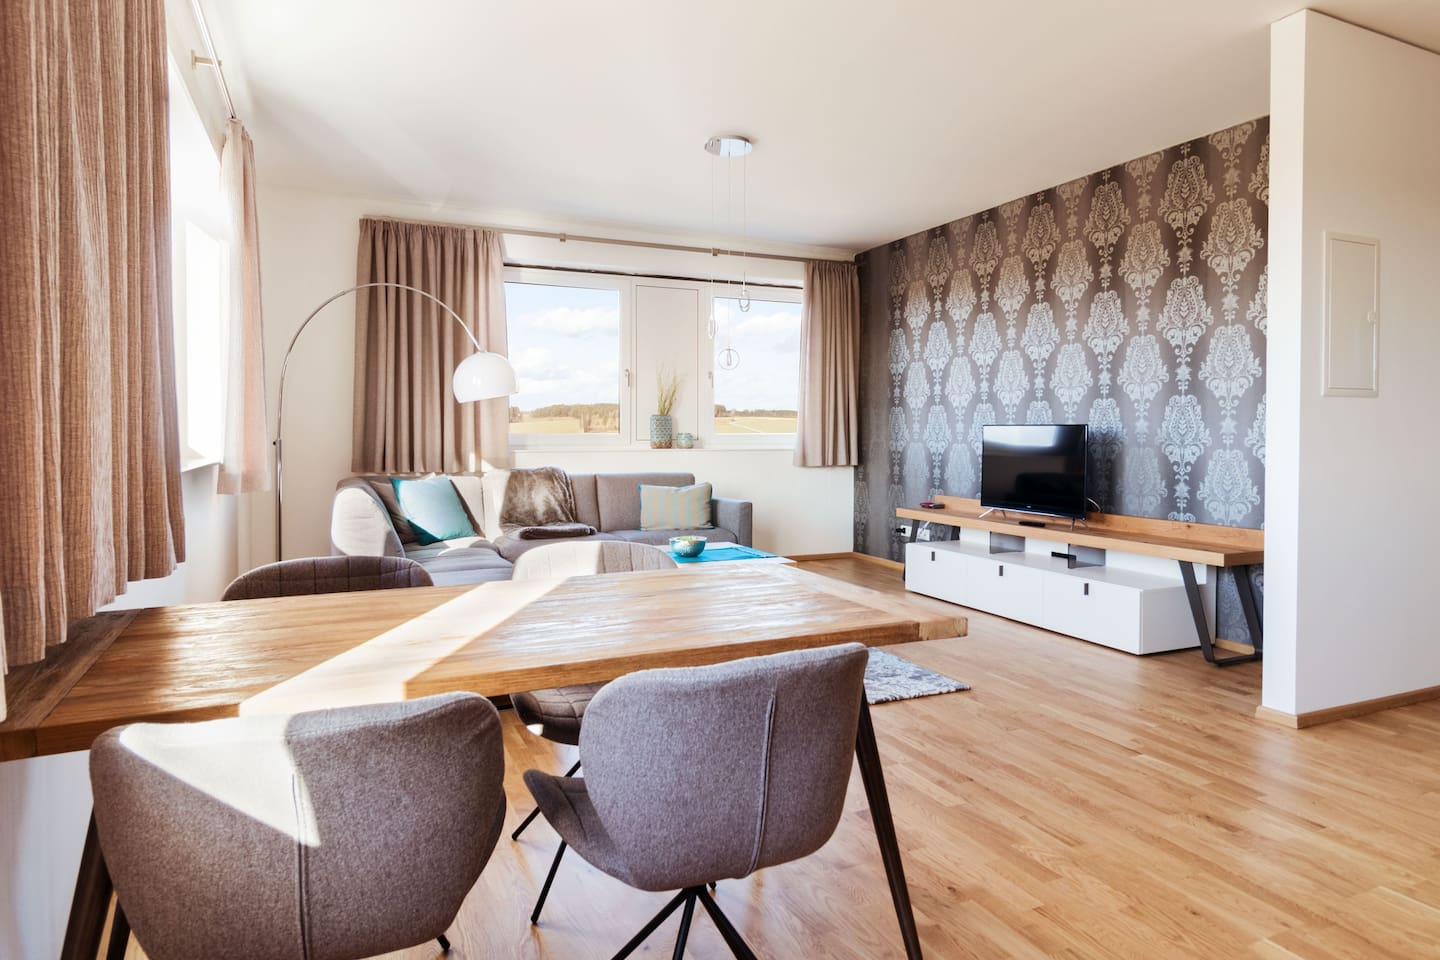 Moderne 80m² Wohnung im Boardinghouse Massing - Serviced apartments ...